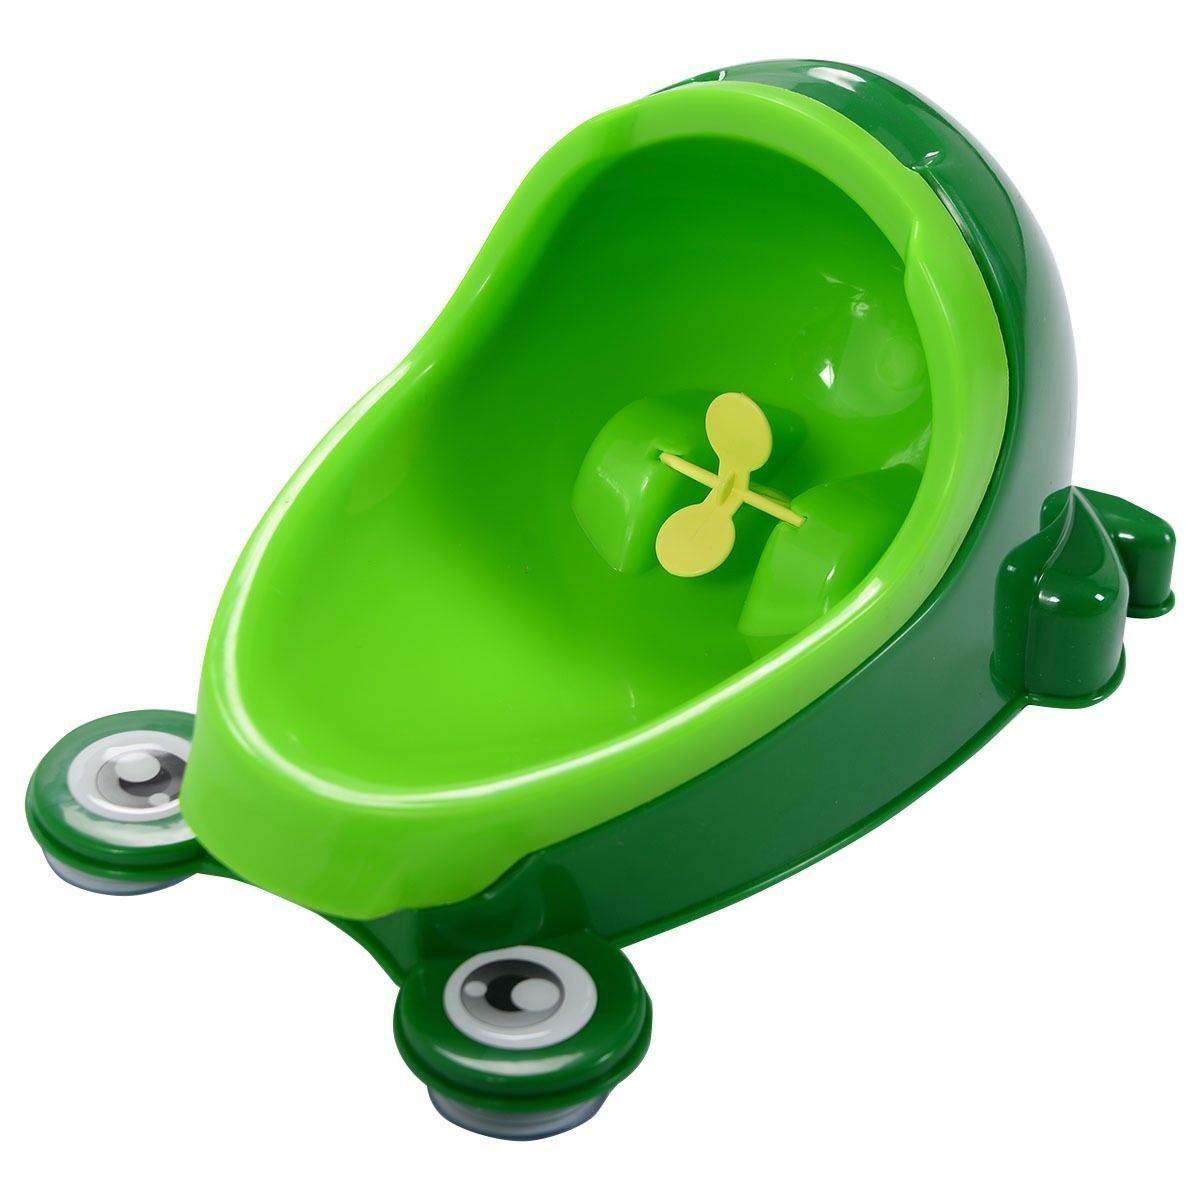 Picture of Potty Training Urinal for Baby Boys with Funny Aiming Target